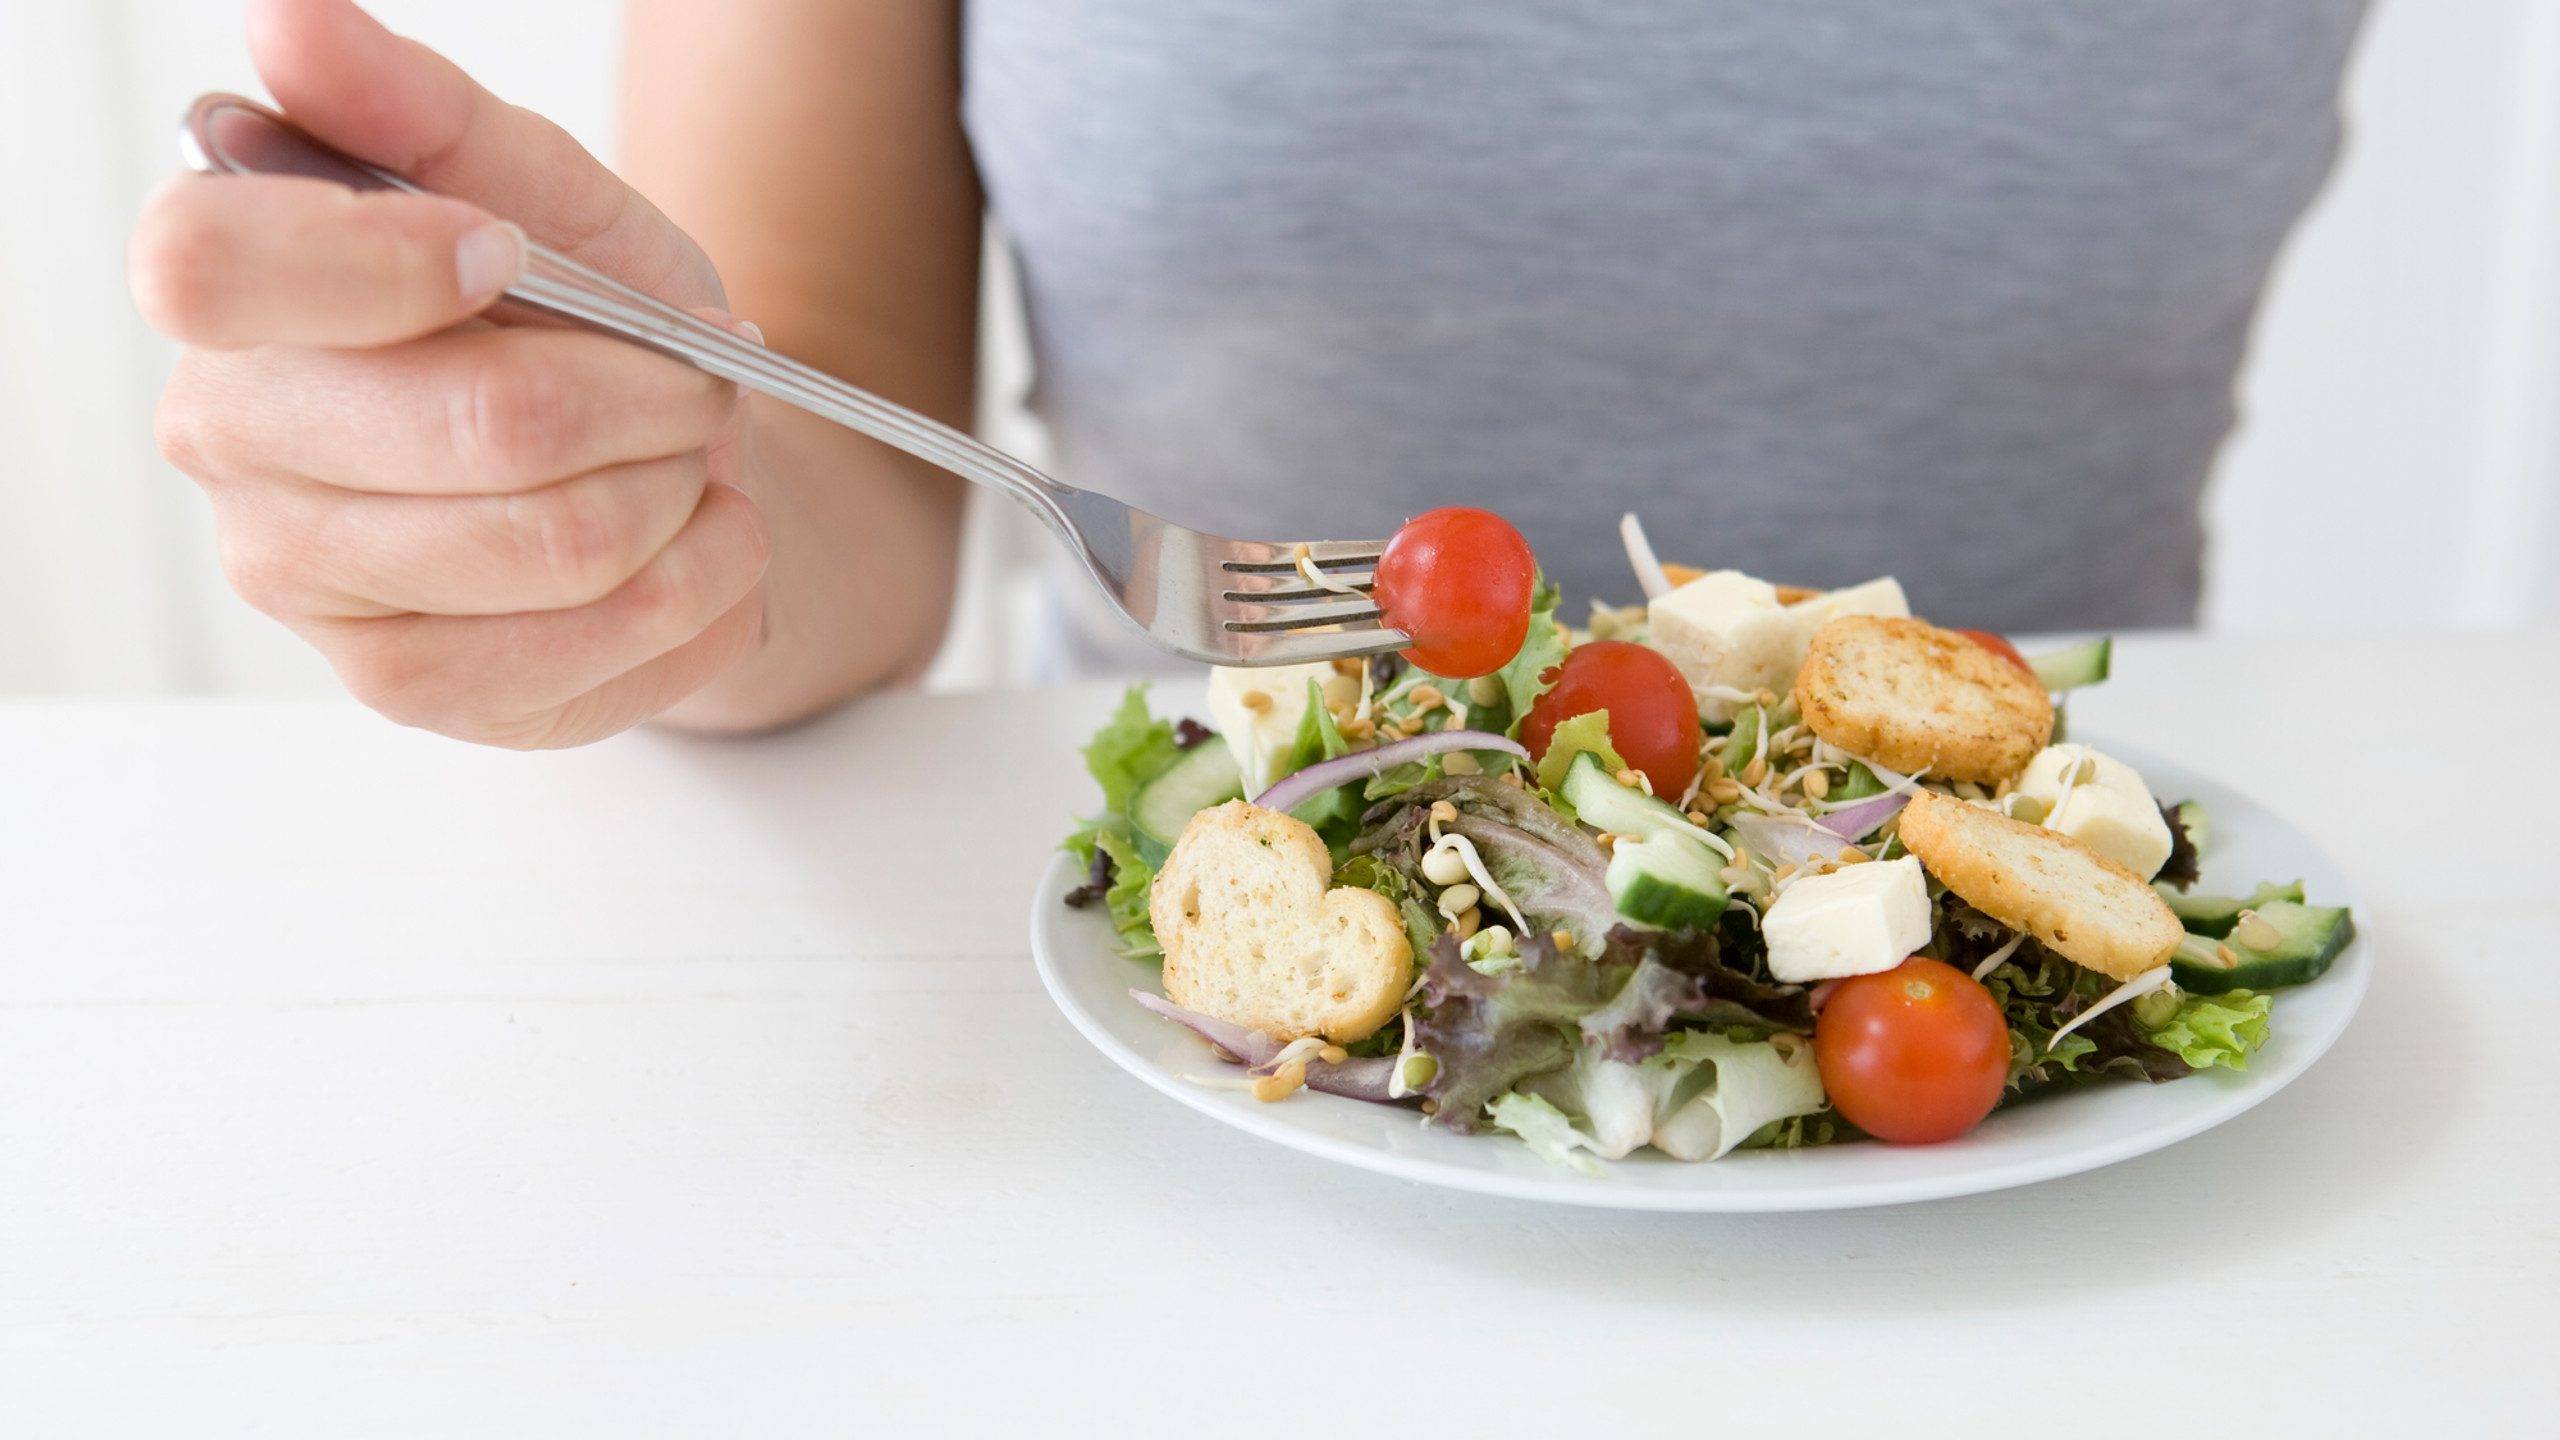 Similar to dinner, a small study showed that eating lunch later (4:30pm) resulted in women burning less calories and using less of the sugars they ate. When sugars aren't used, they are stored as fat. This can lead to weight gain and type 2 diabetes. However, women who ate lunch earlier, by 1pm, burned more calories and used more of the sugar as energy.